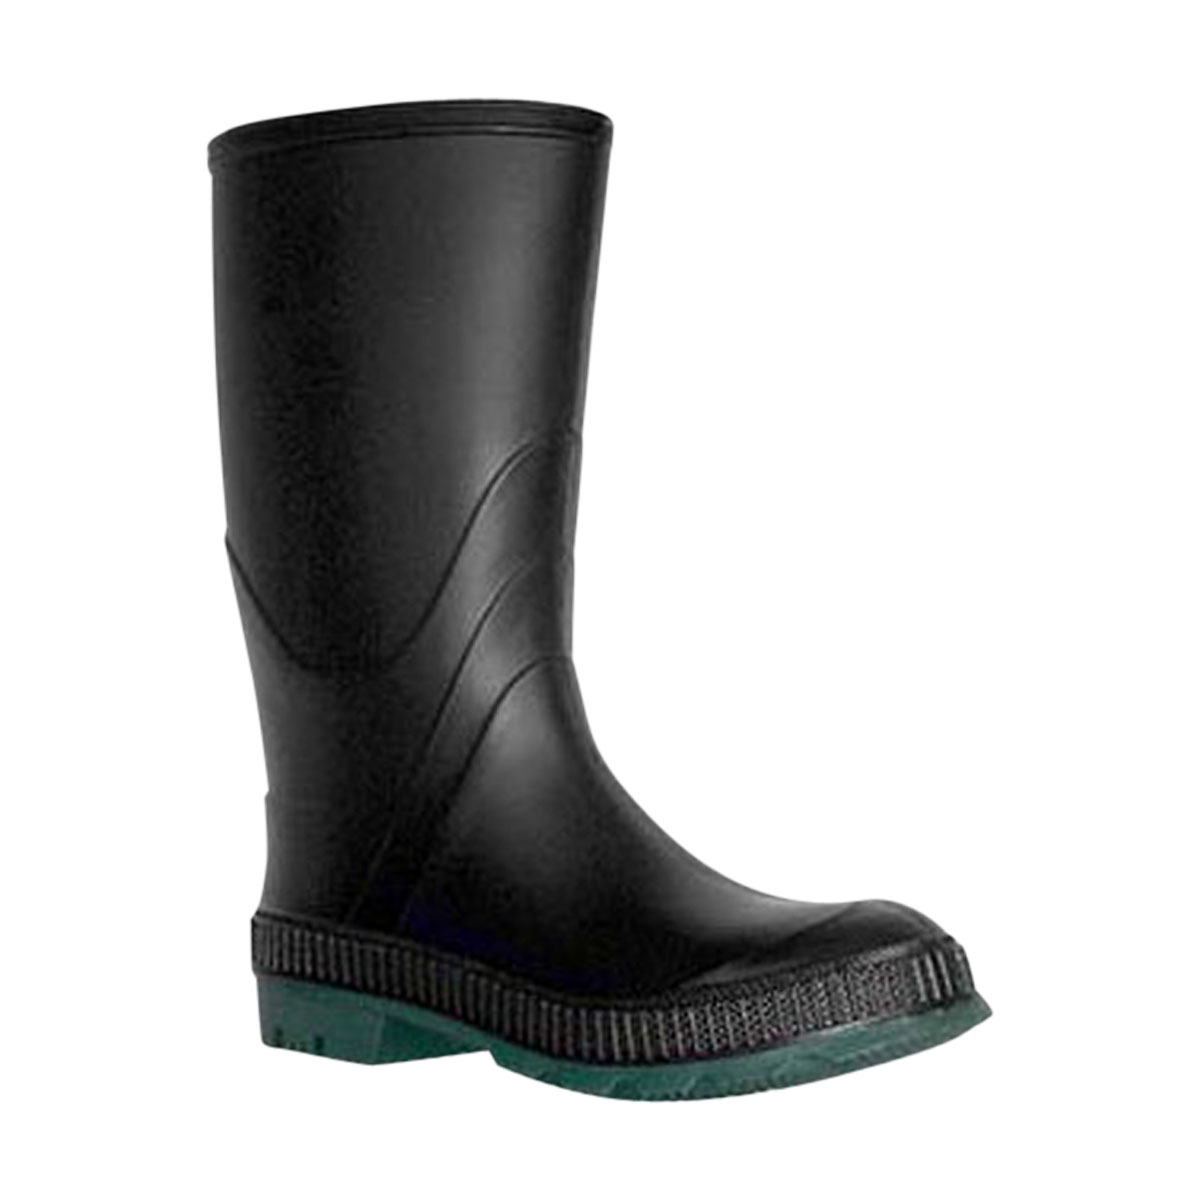 Blazer Kids Rubber Rainboot - Black